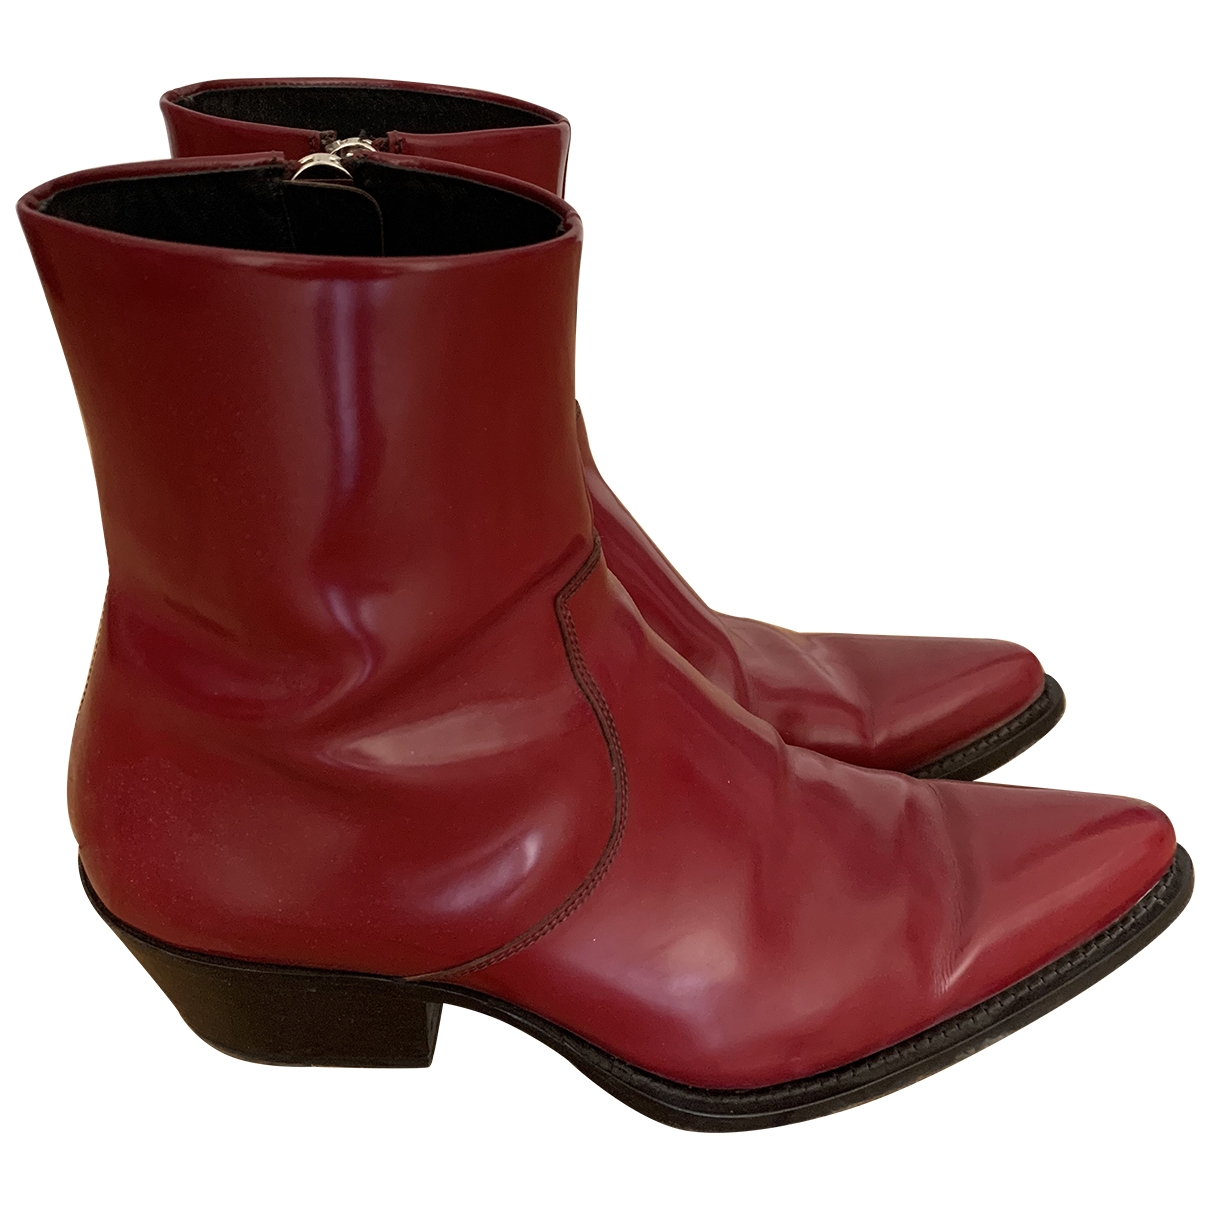 Calvin Klein 205w39nyc \N Red Patent leather Boots for Men 42 EU